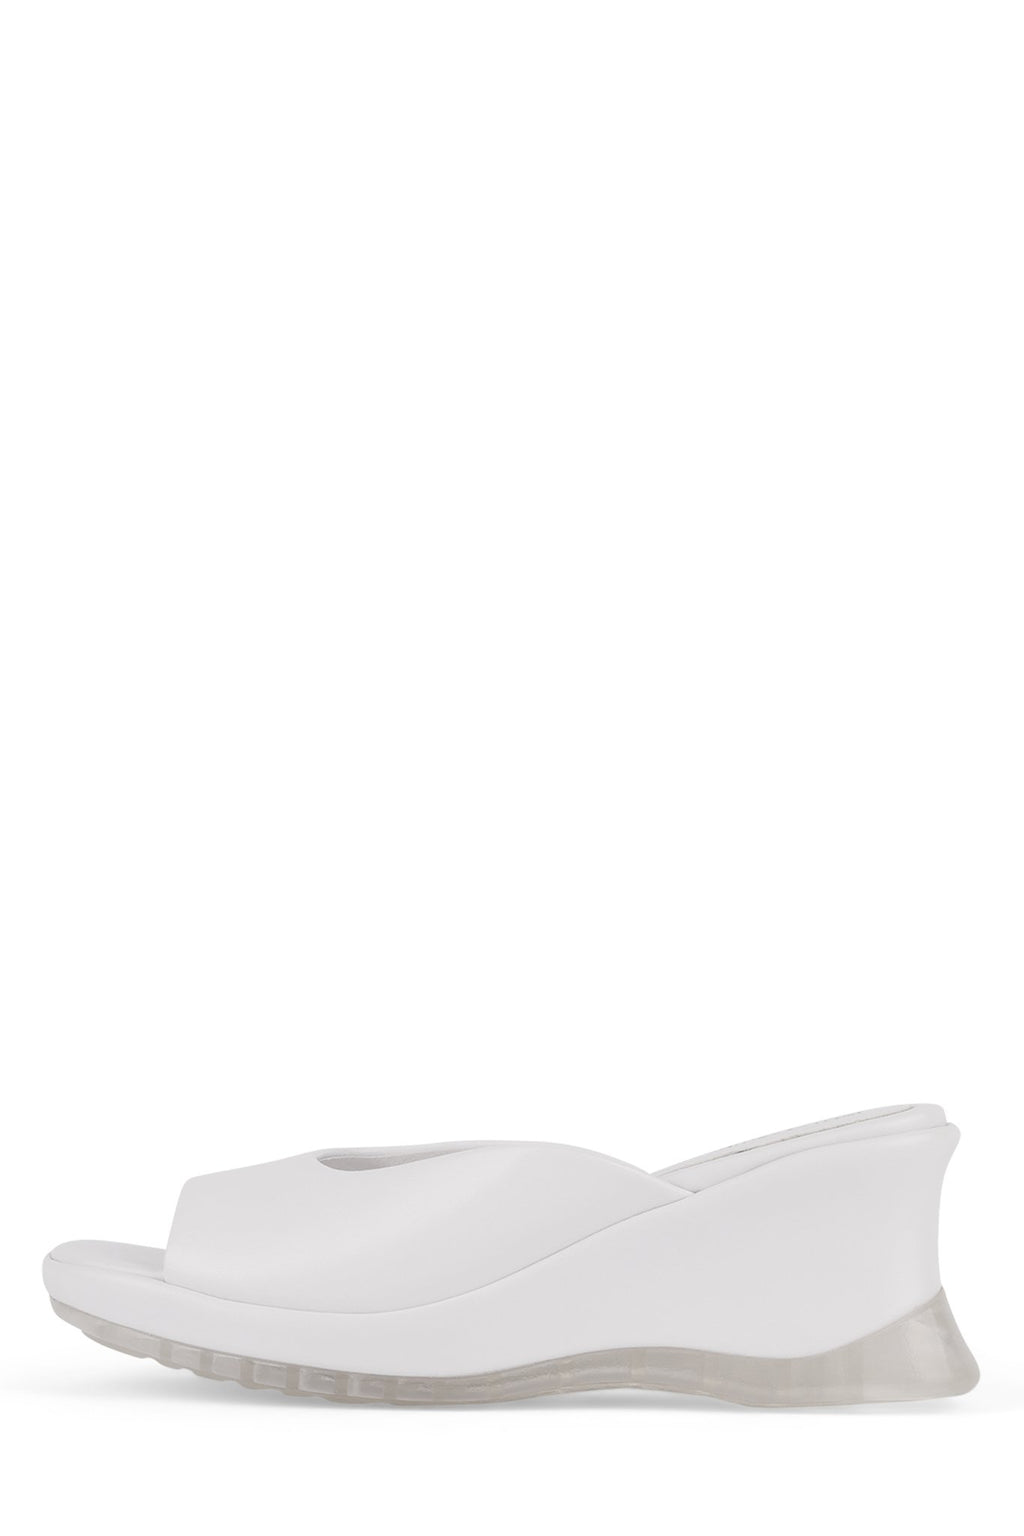 RYUKI Wedge Sandal YYH White 6